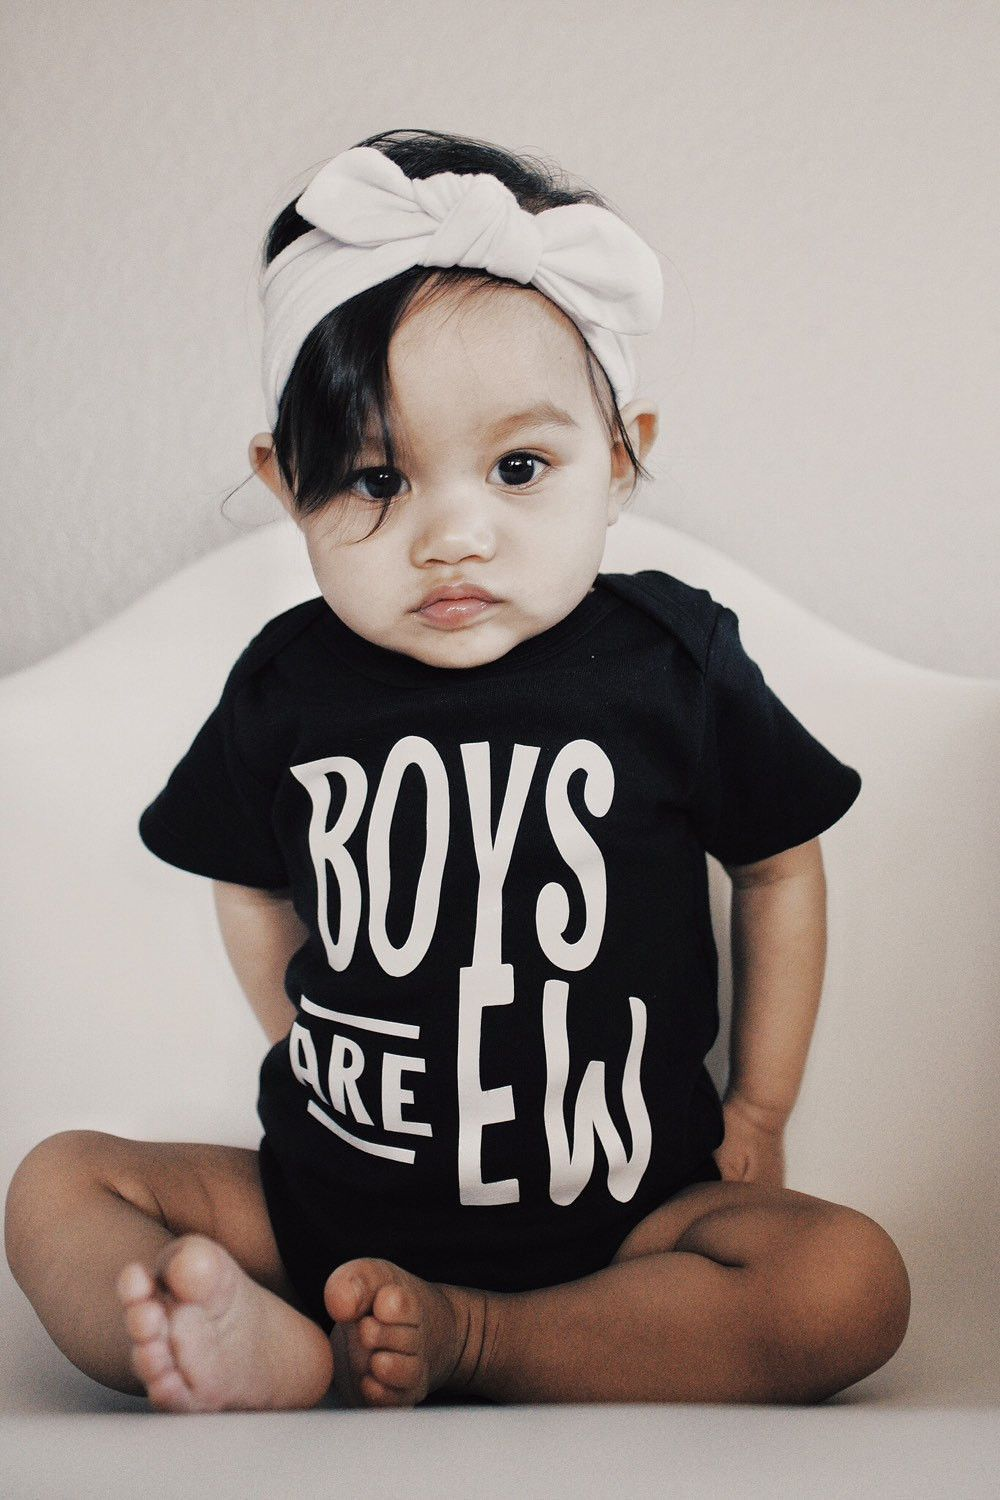 Custom Black Tshirt Funny Boys Are Ew Romper Baby Creeper